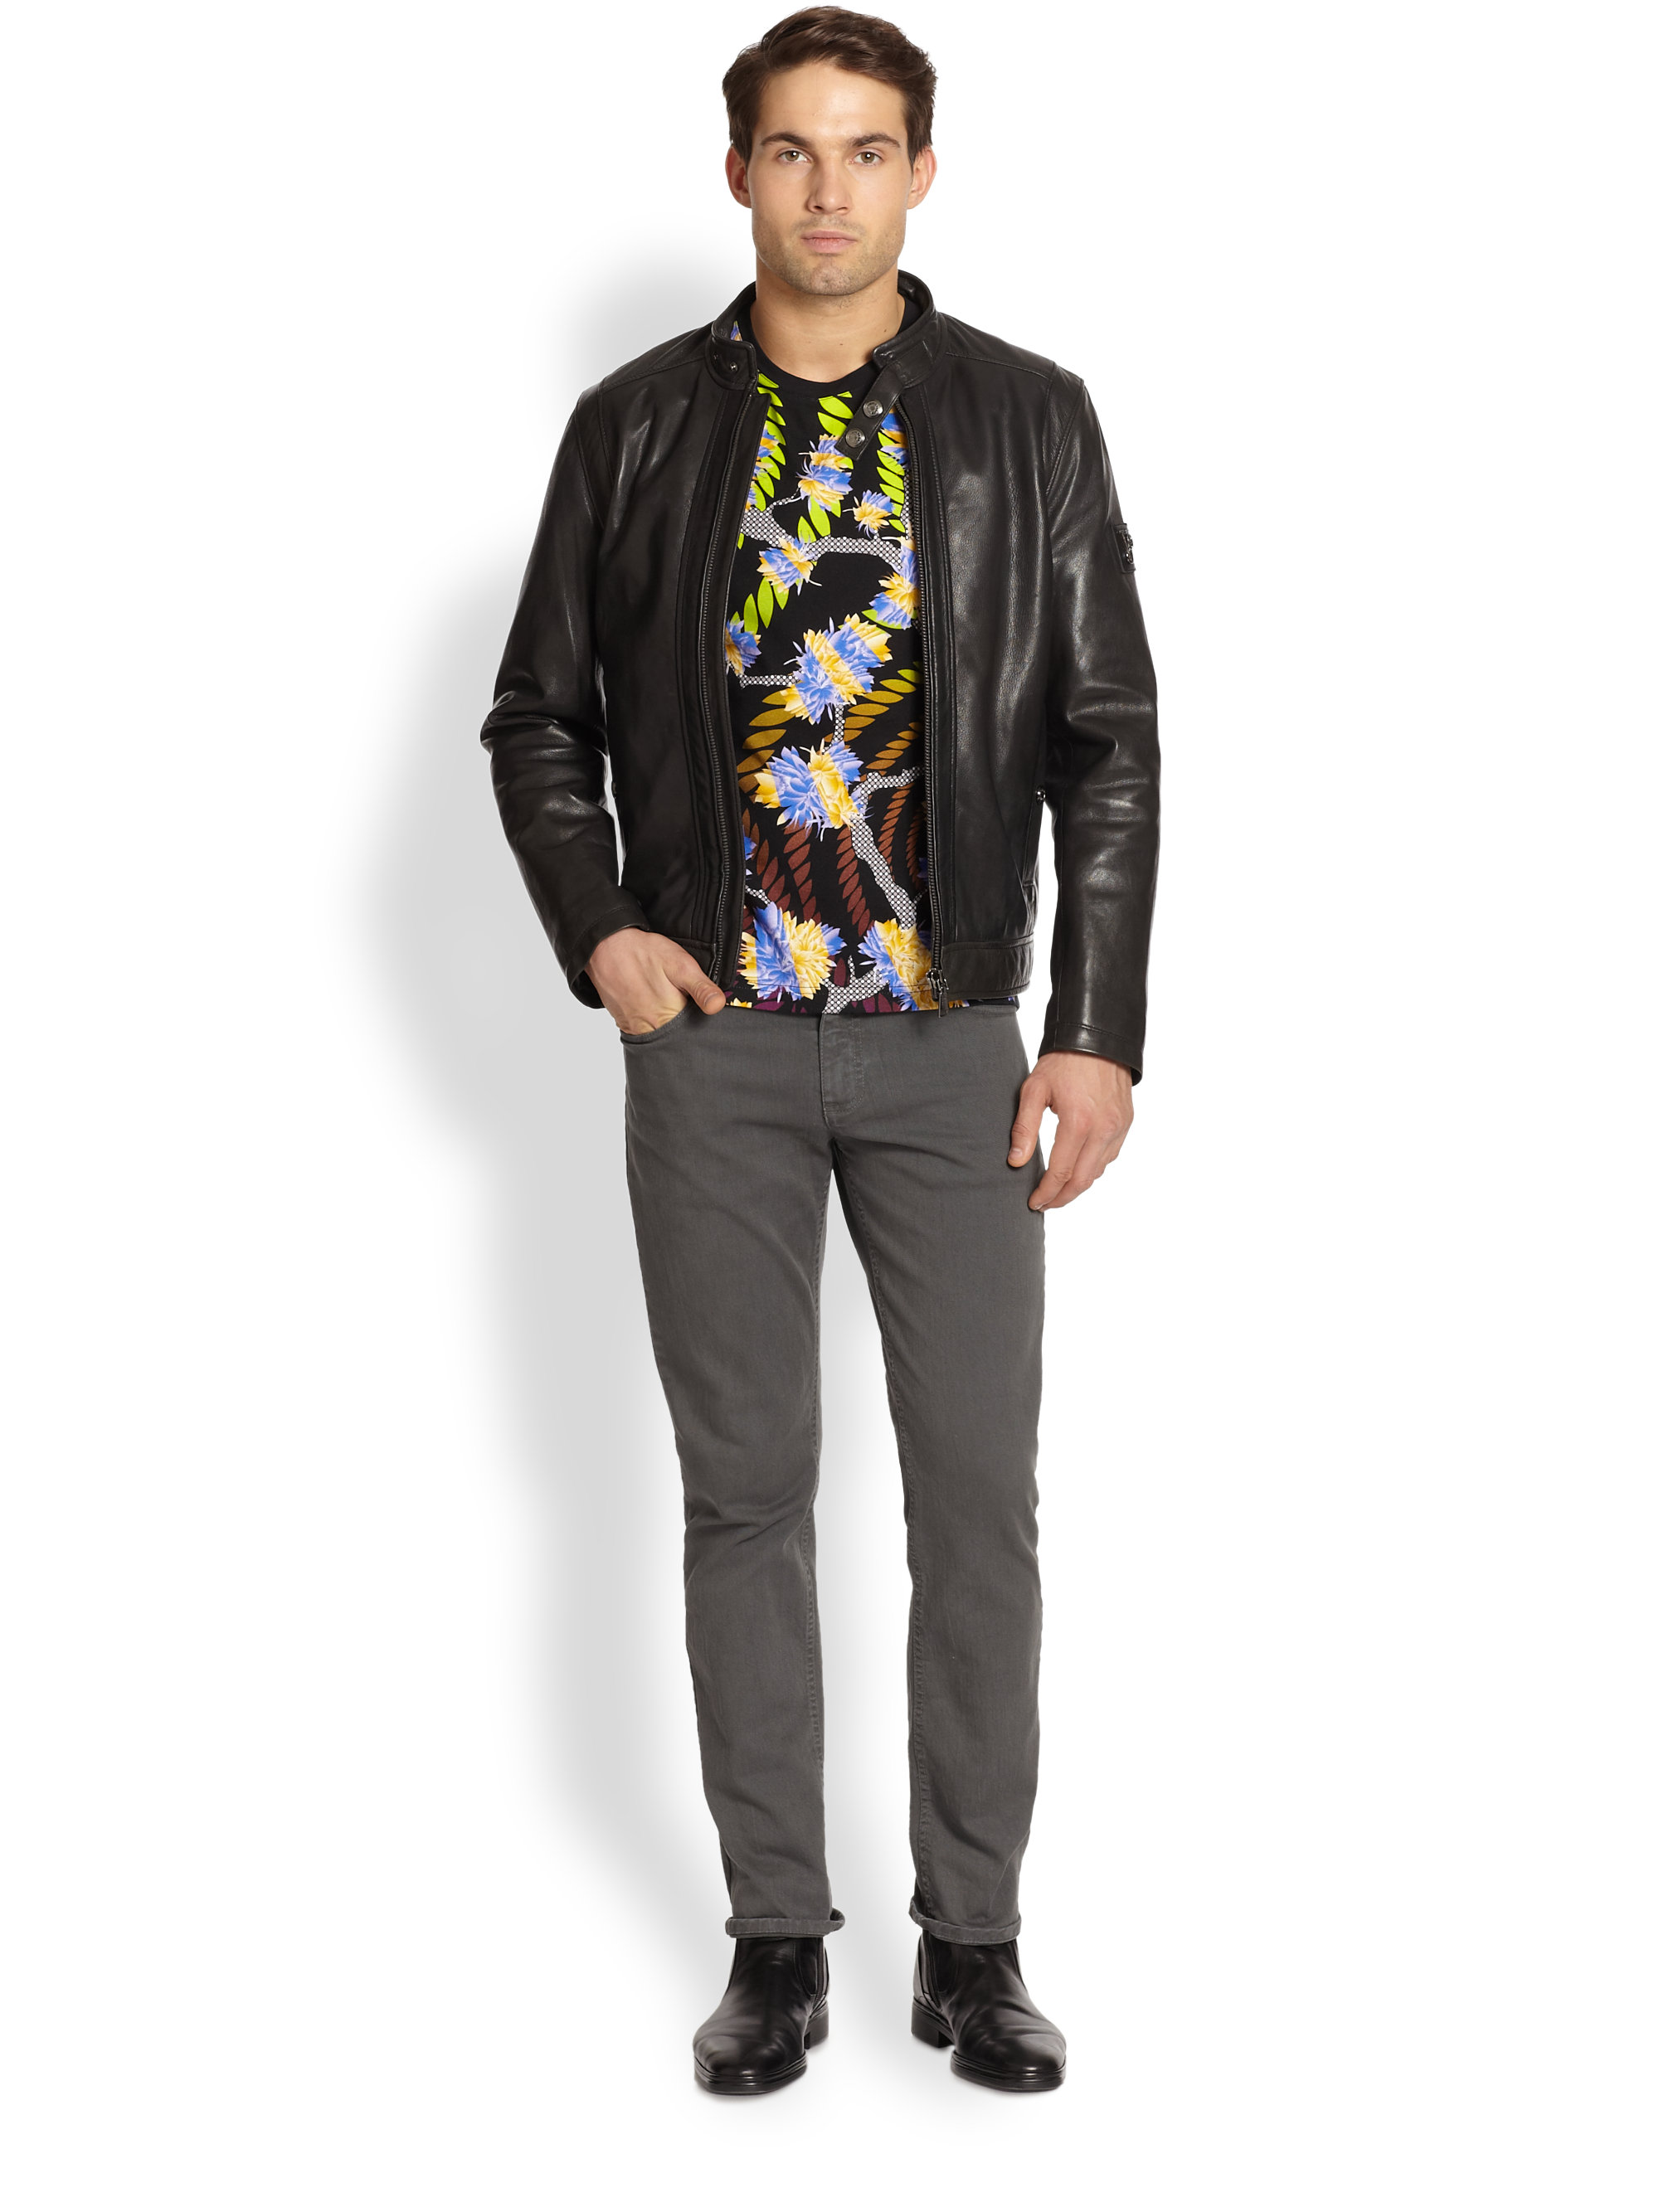 Versace Jeans Leather Jacket in Black for Men - Lyst